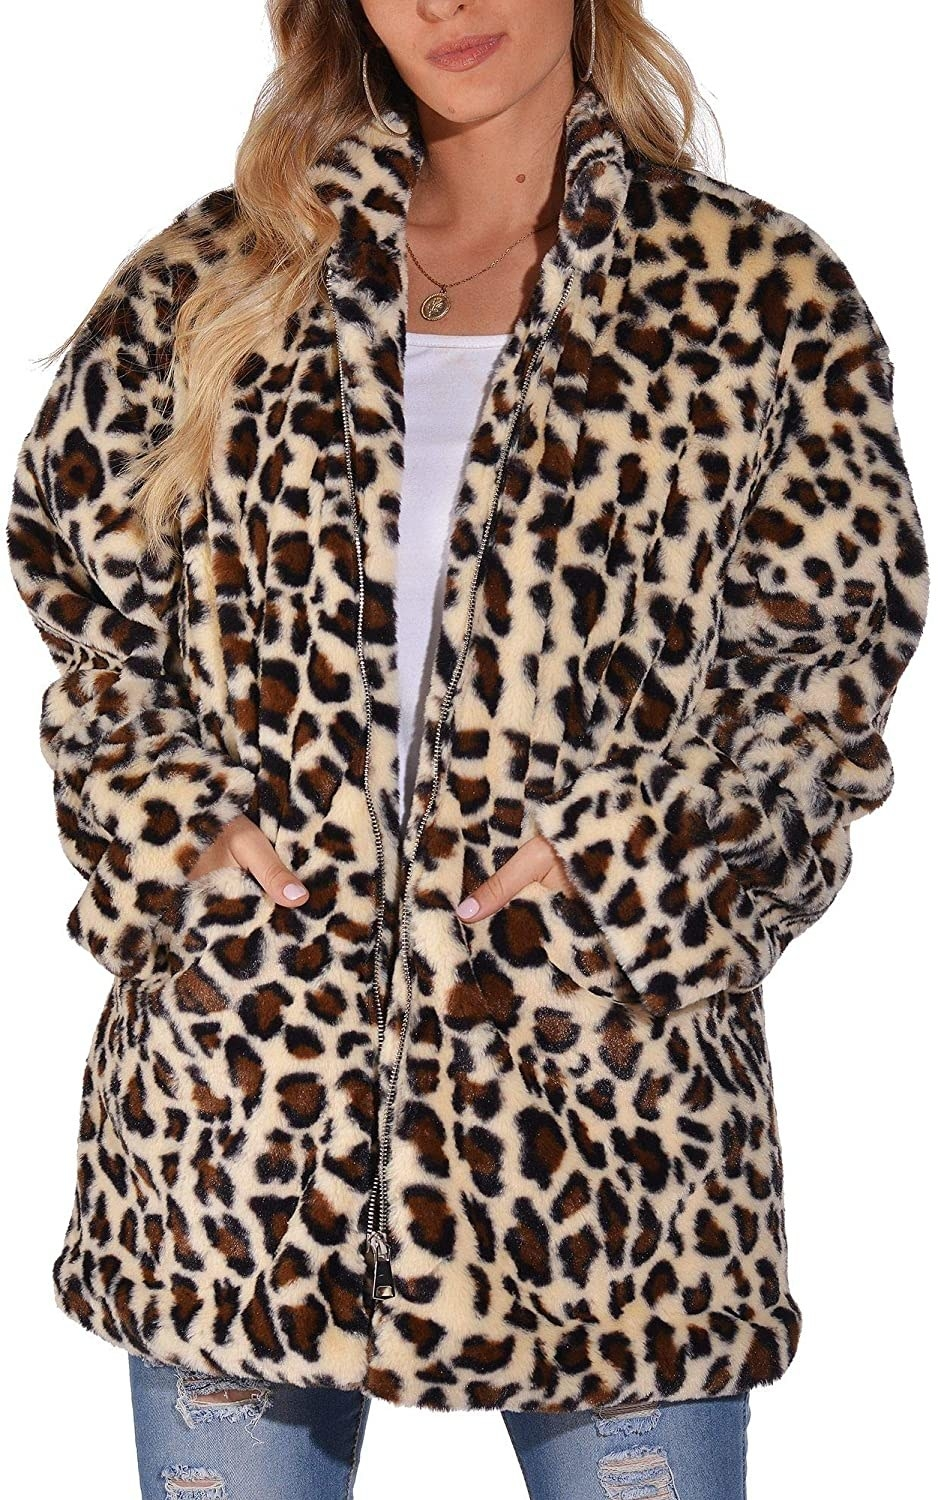 Model in the zip-front leopard print jacket